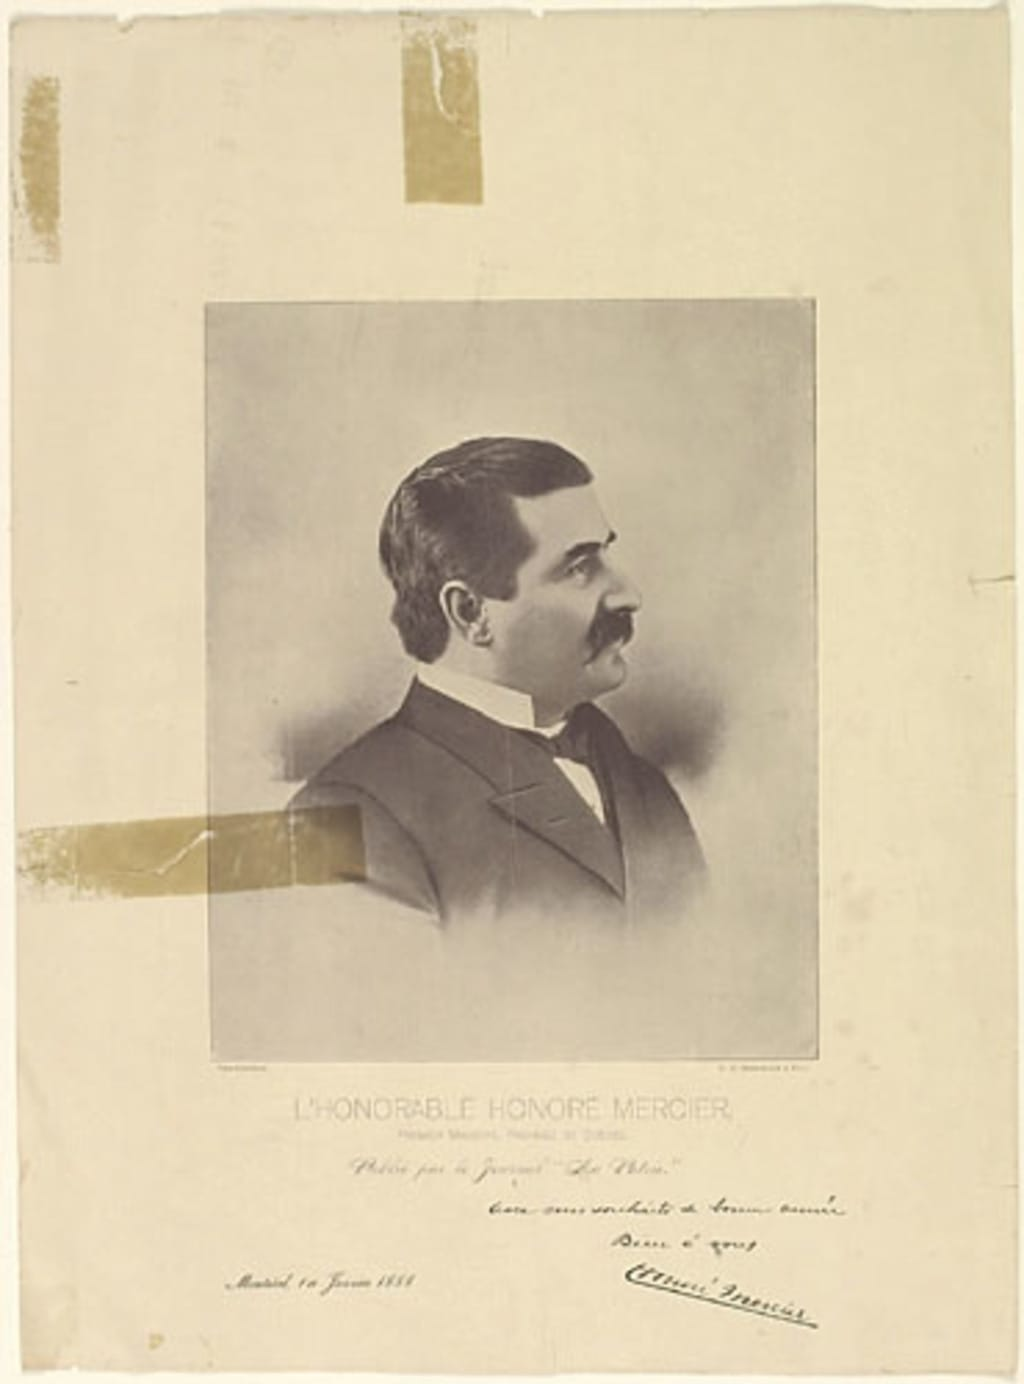 L'Honorable Honoré Mercier